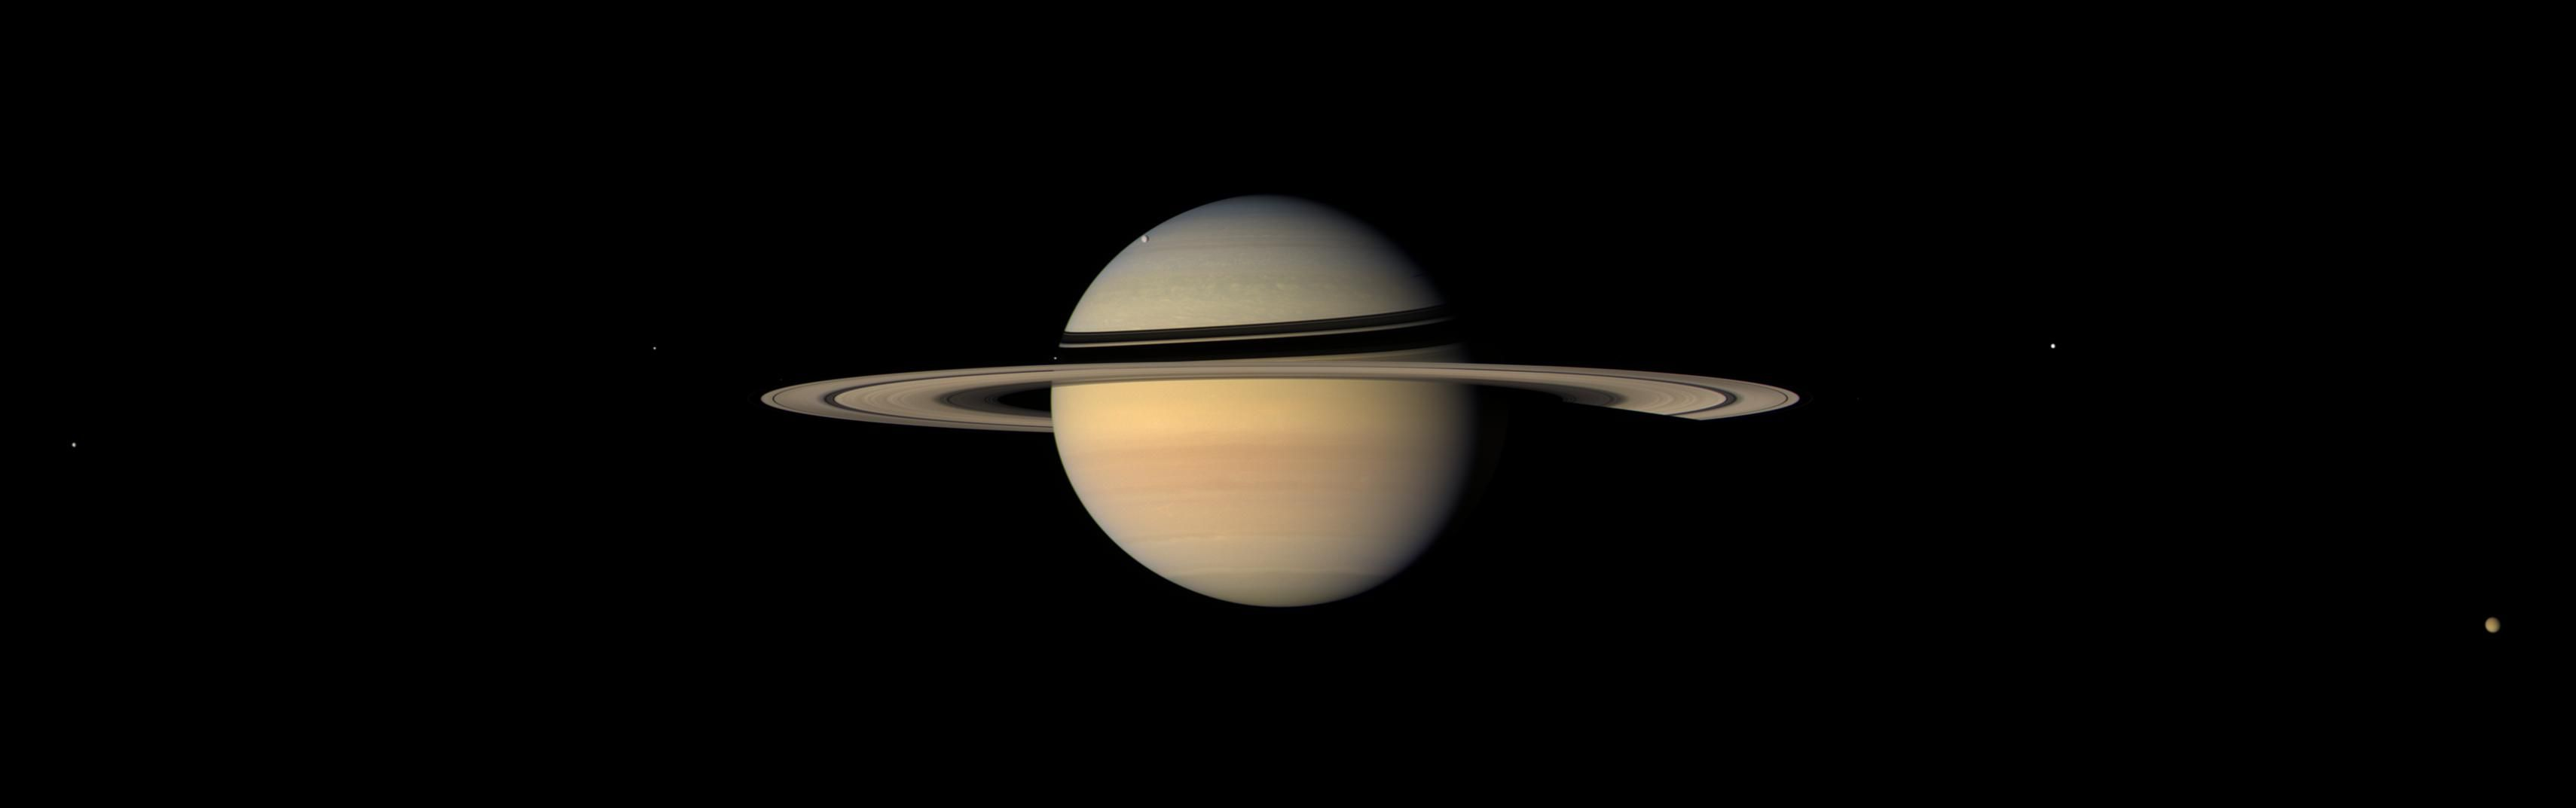 Six Saturn moons are visible in this image snapped by NASA's Cassini probe in September 2007, including Titan at the lower right.